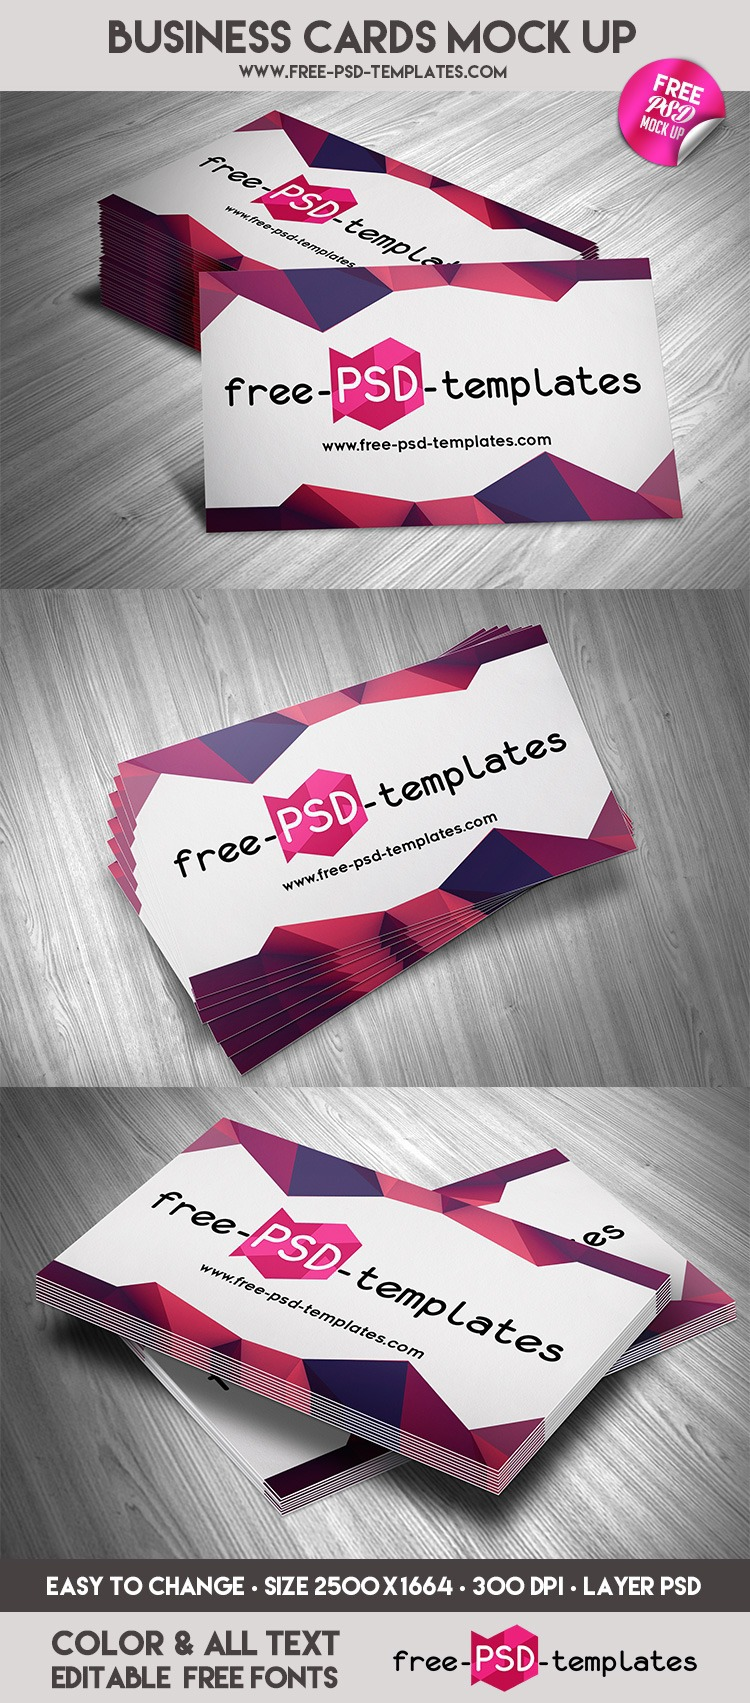 FREE BUSINESS CARDS MOCK UP IN PSD on Behance